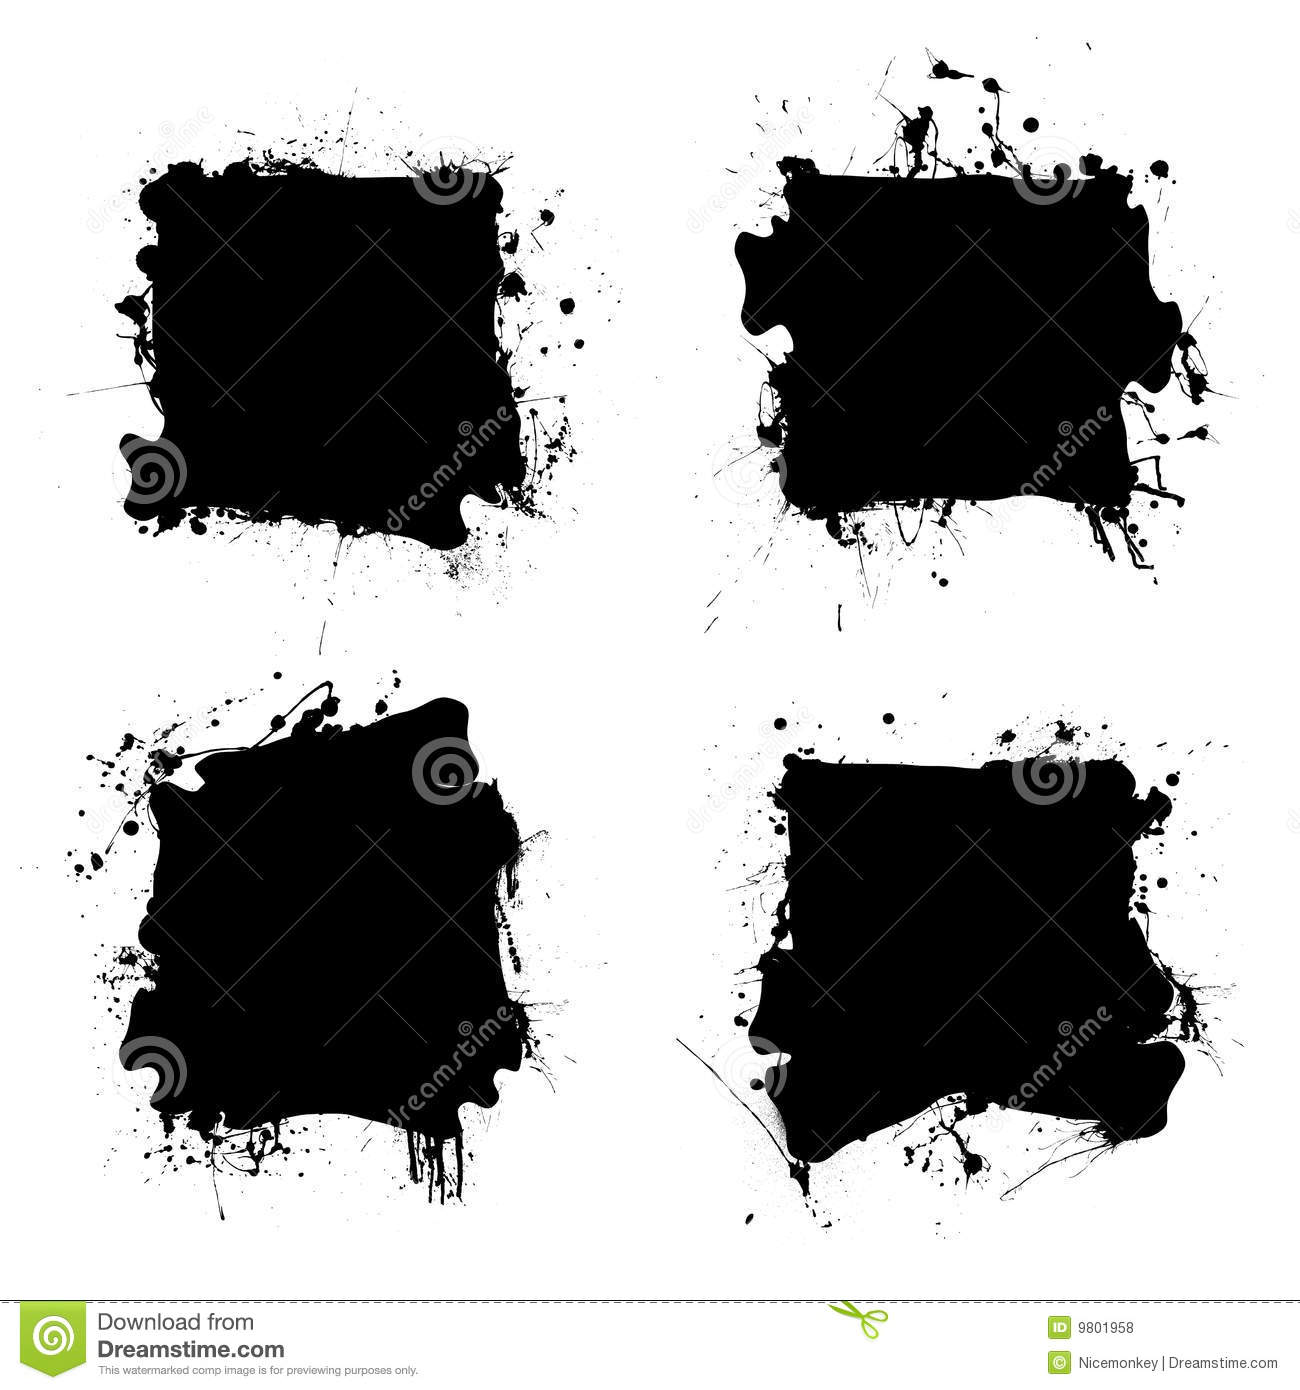 Background free vector download 42844 Free vector for